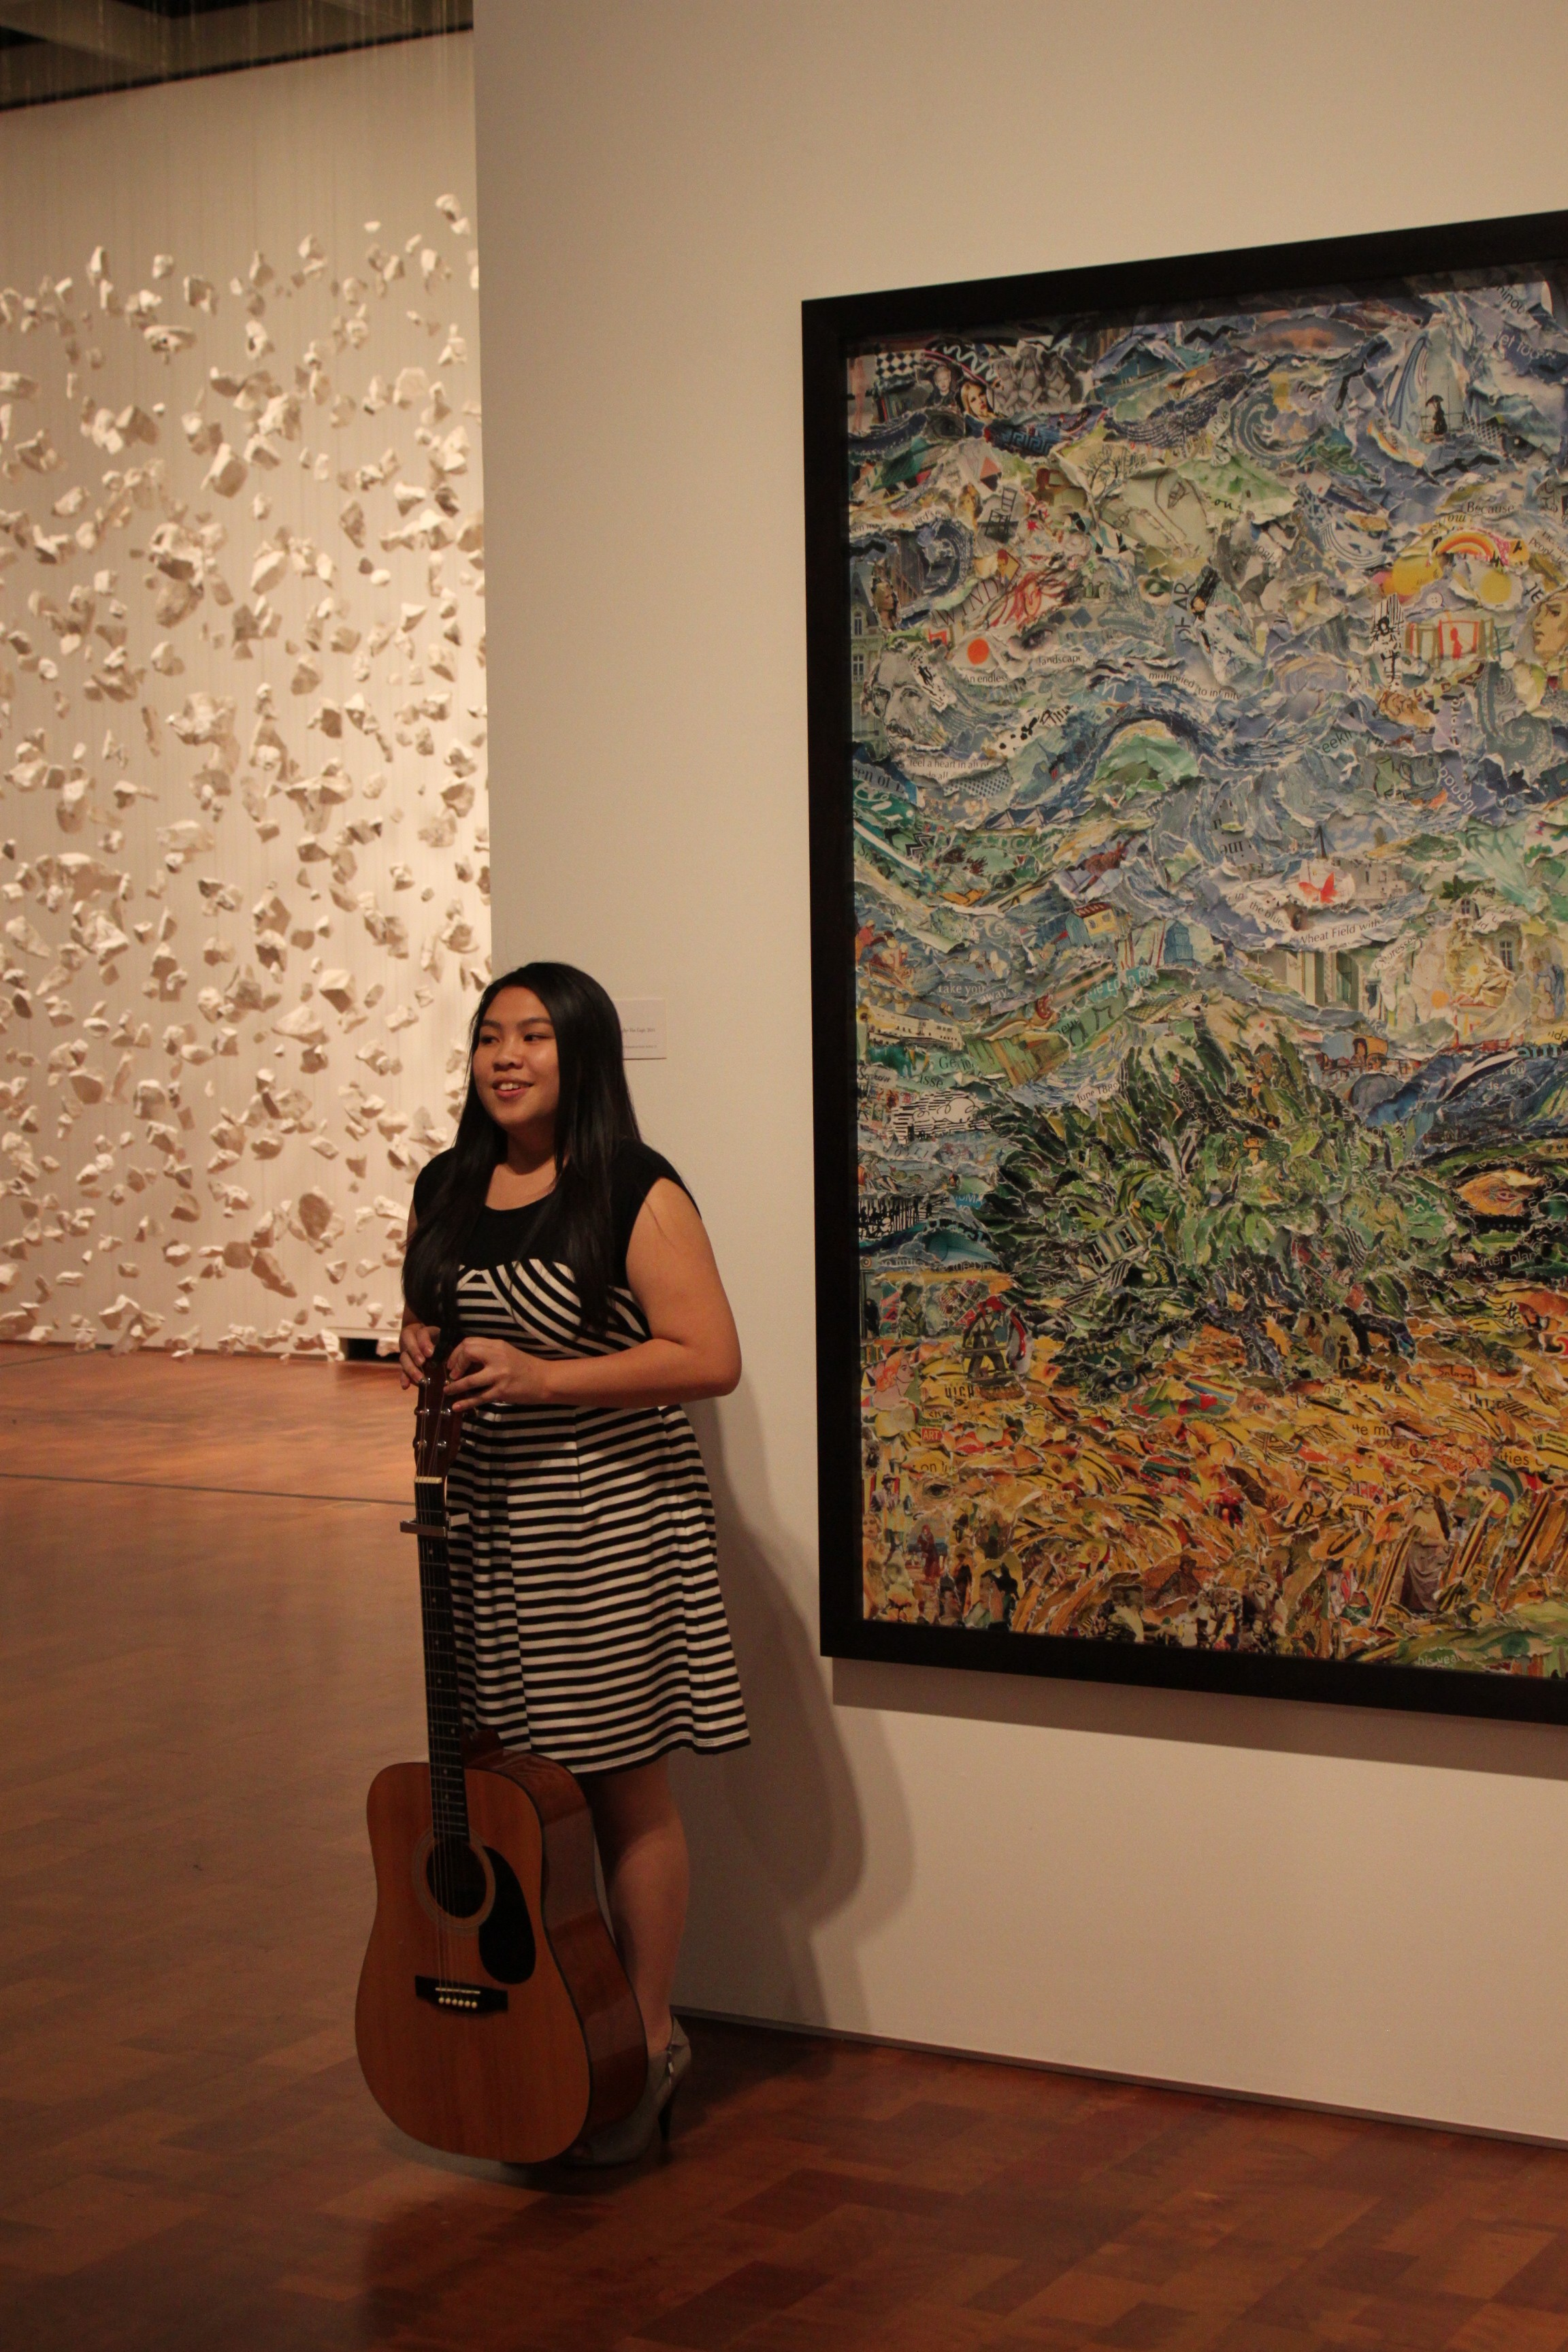 """Mowpunzor wrote and performed a song inspired by Vik Muniz' """"Wheat Field with Cypresses after Van Gogh."""""""